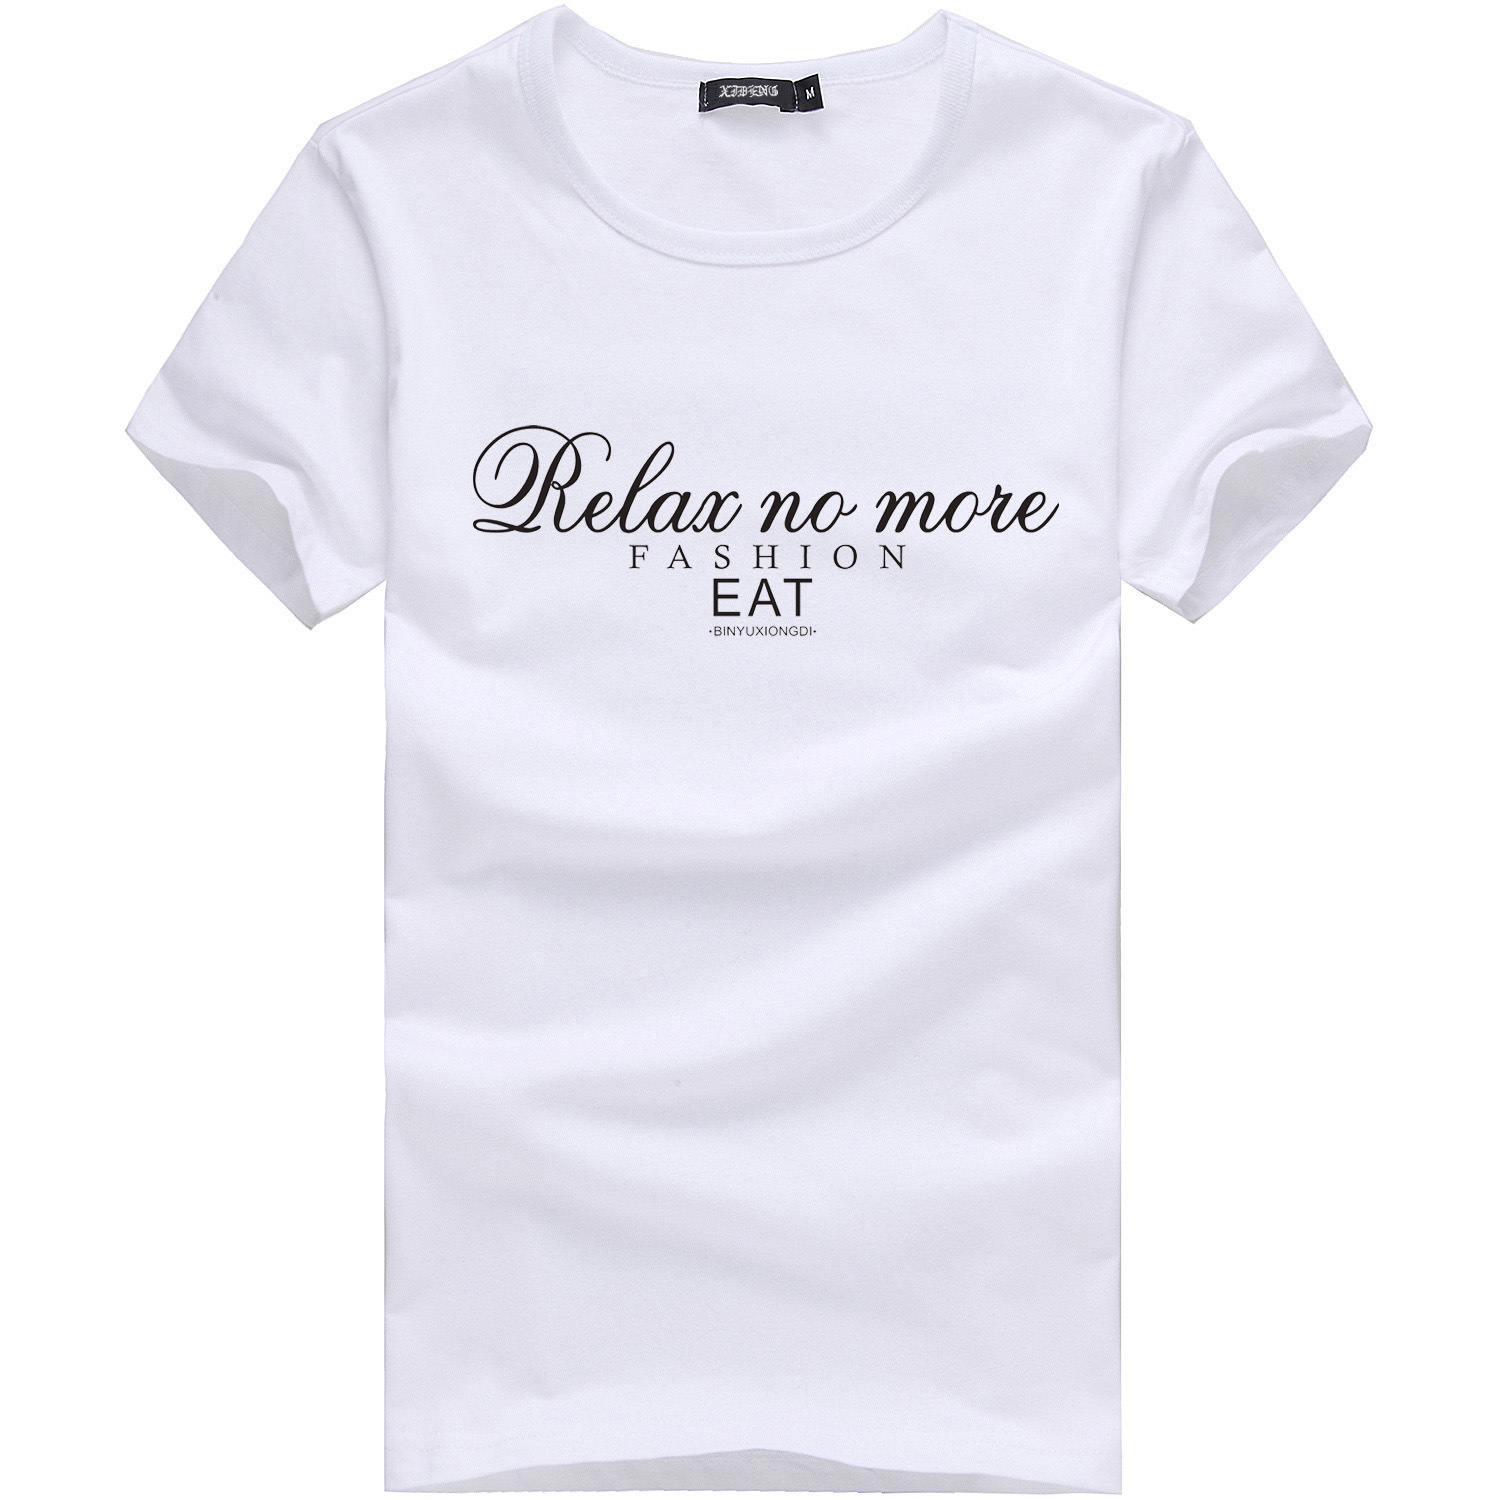 <font><b>Oversized</b></font> <font><b>Men</b></font> T <font><b>Shirt</b></font> Cotton Clothing <font><b>Korean</b></font> <font><b>Style</b></font> Fashion Casual Top Summer Gym Clothes Streetwear Graphic Undershirts <font><b>Shirts</b></font> image